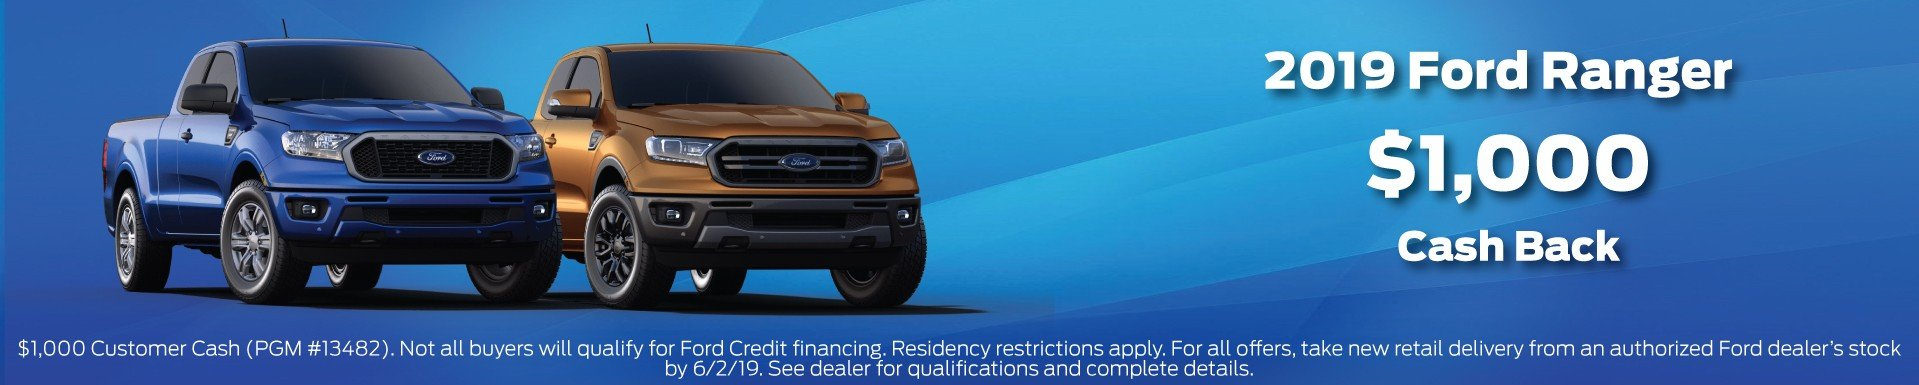 2019 Ranger Incentives 6-2-2019